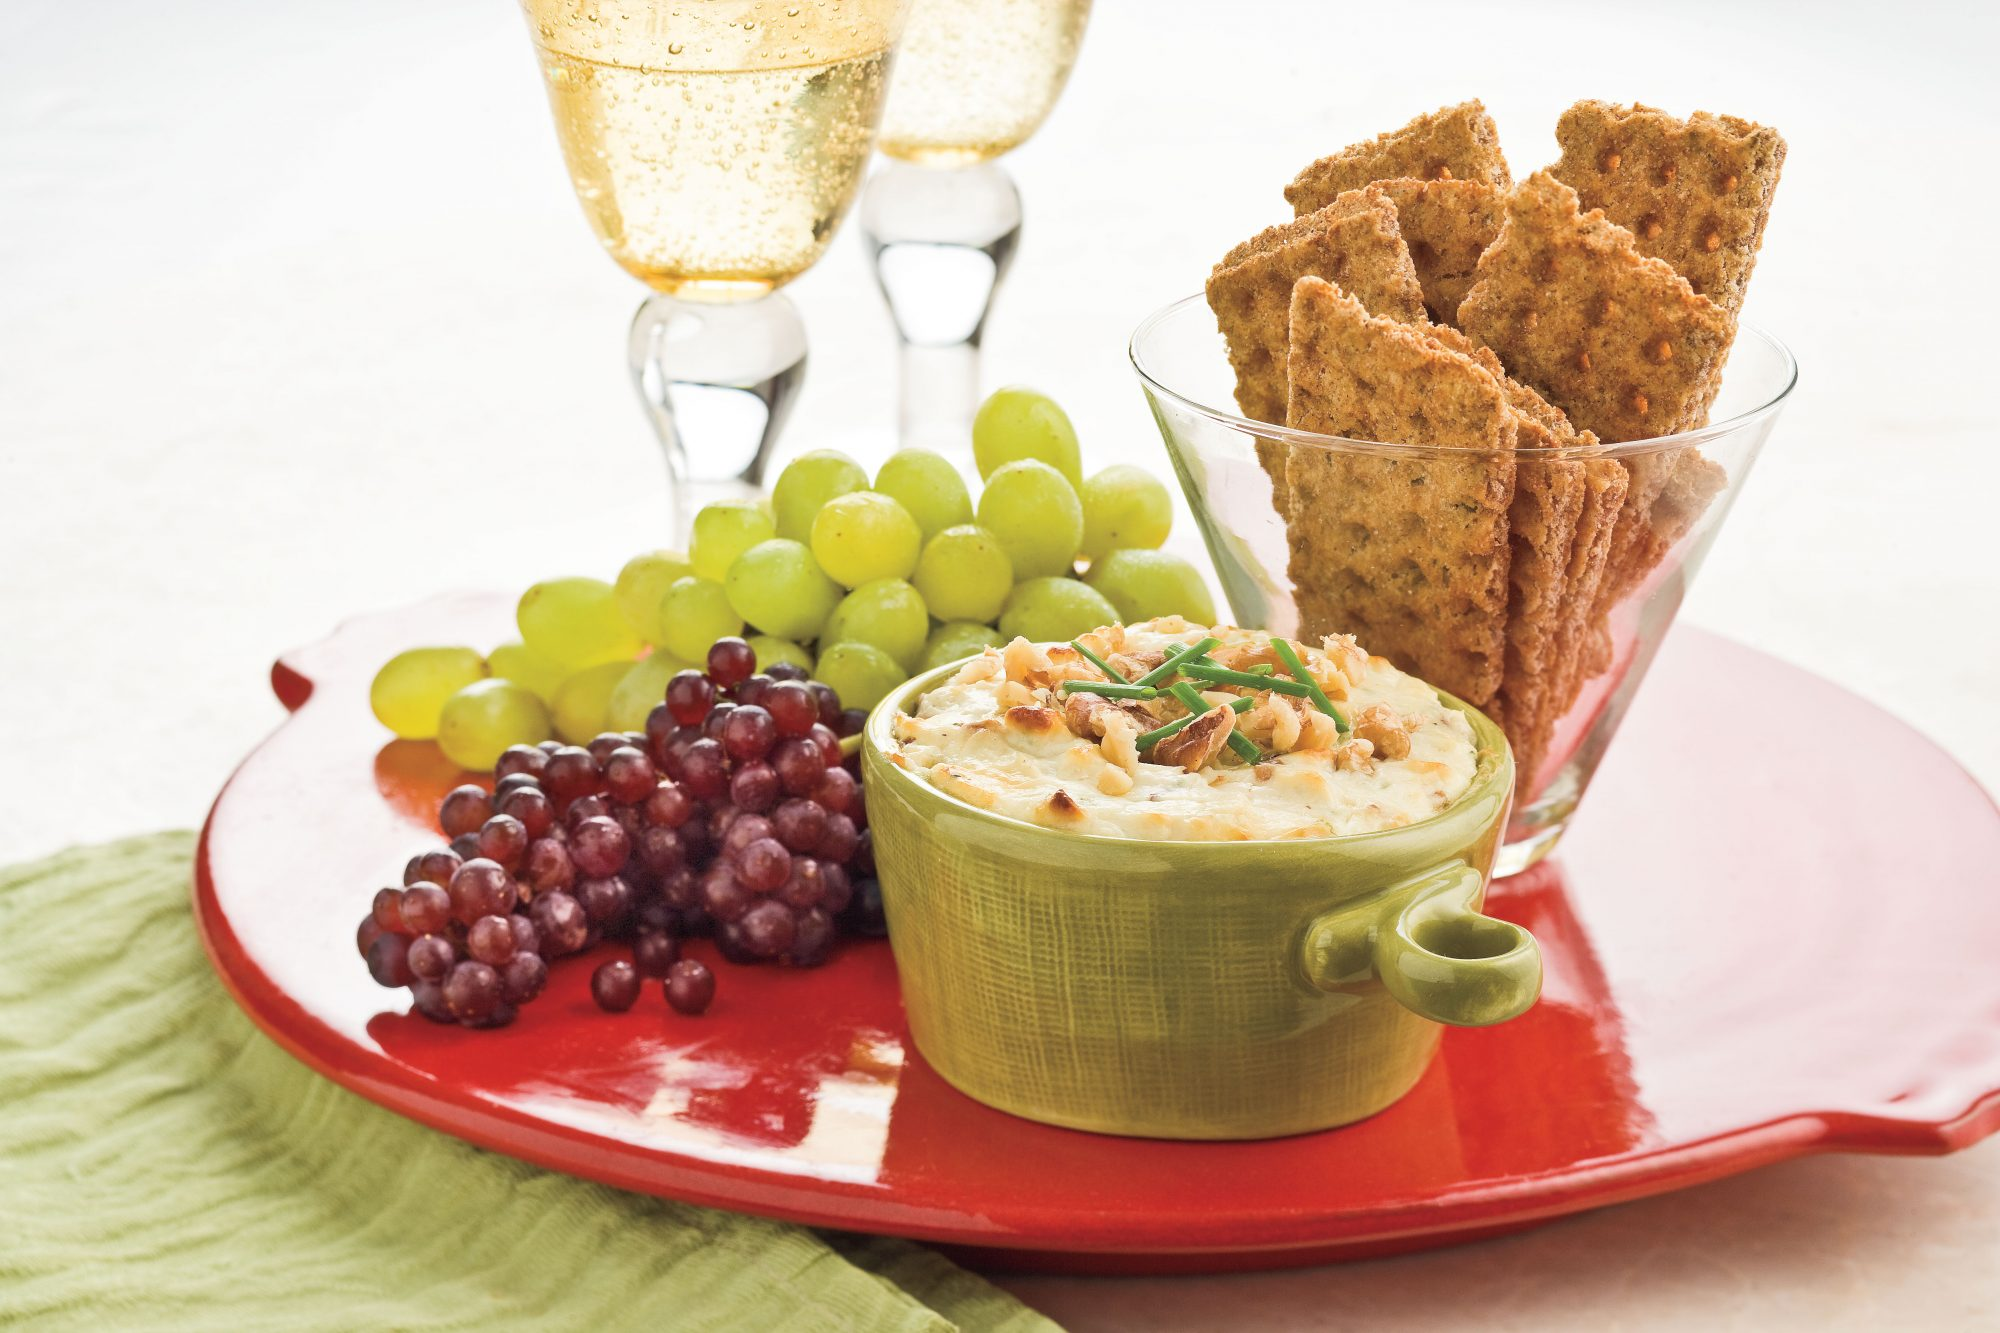 The Crowd-Pleasing Appetizer